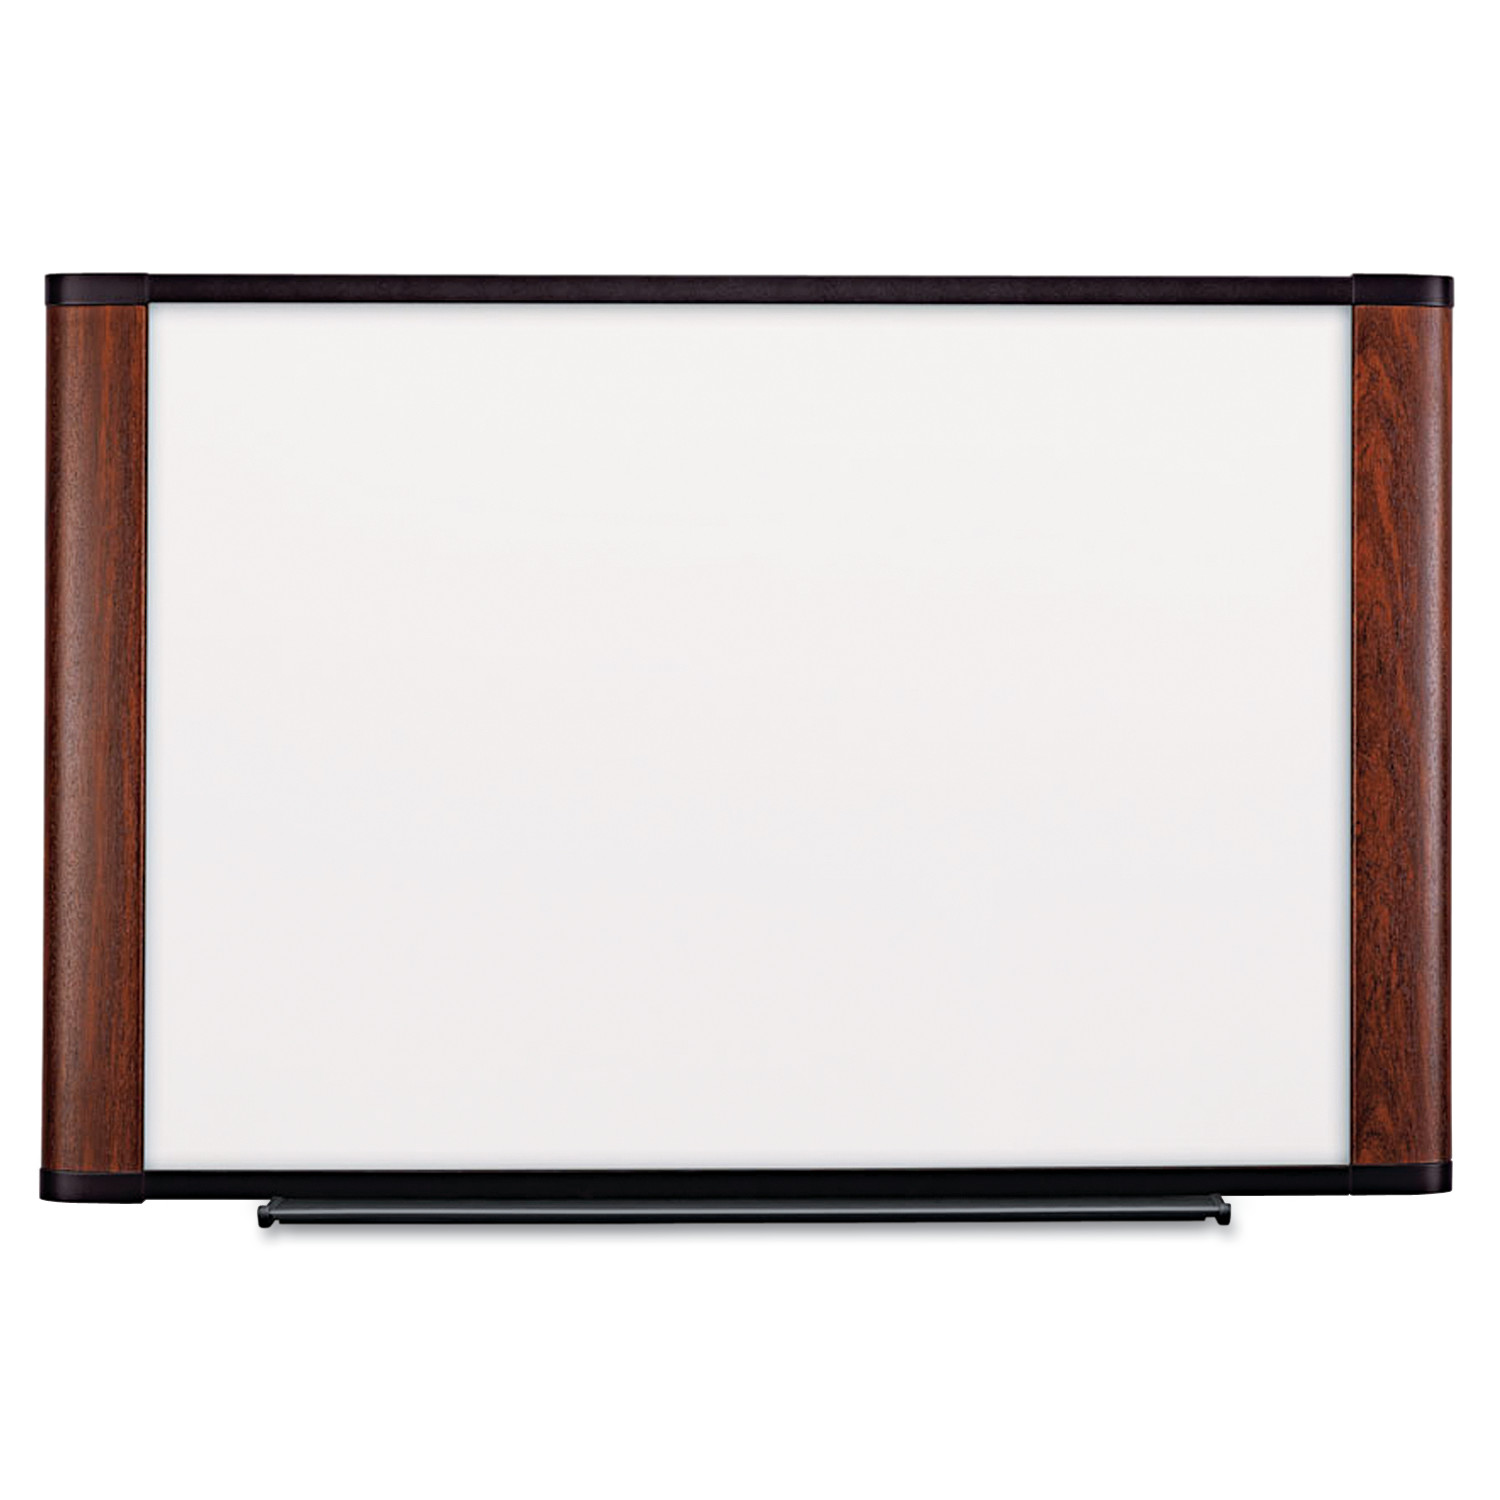 3M Melamine Dry Erase Board, 72 x 48, Mahogany Frame by 3M/COMMERCIAL TAPE DIV.